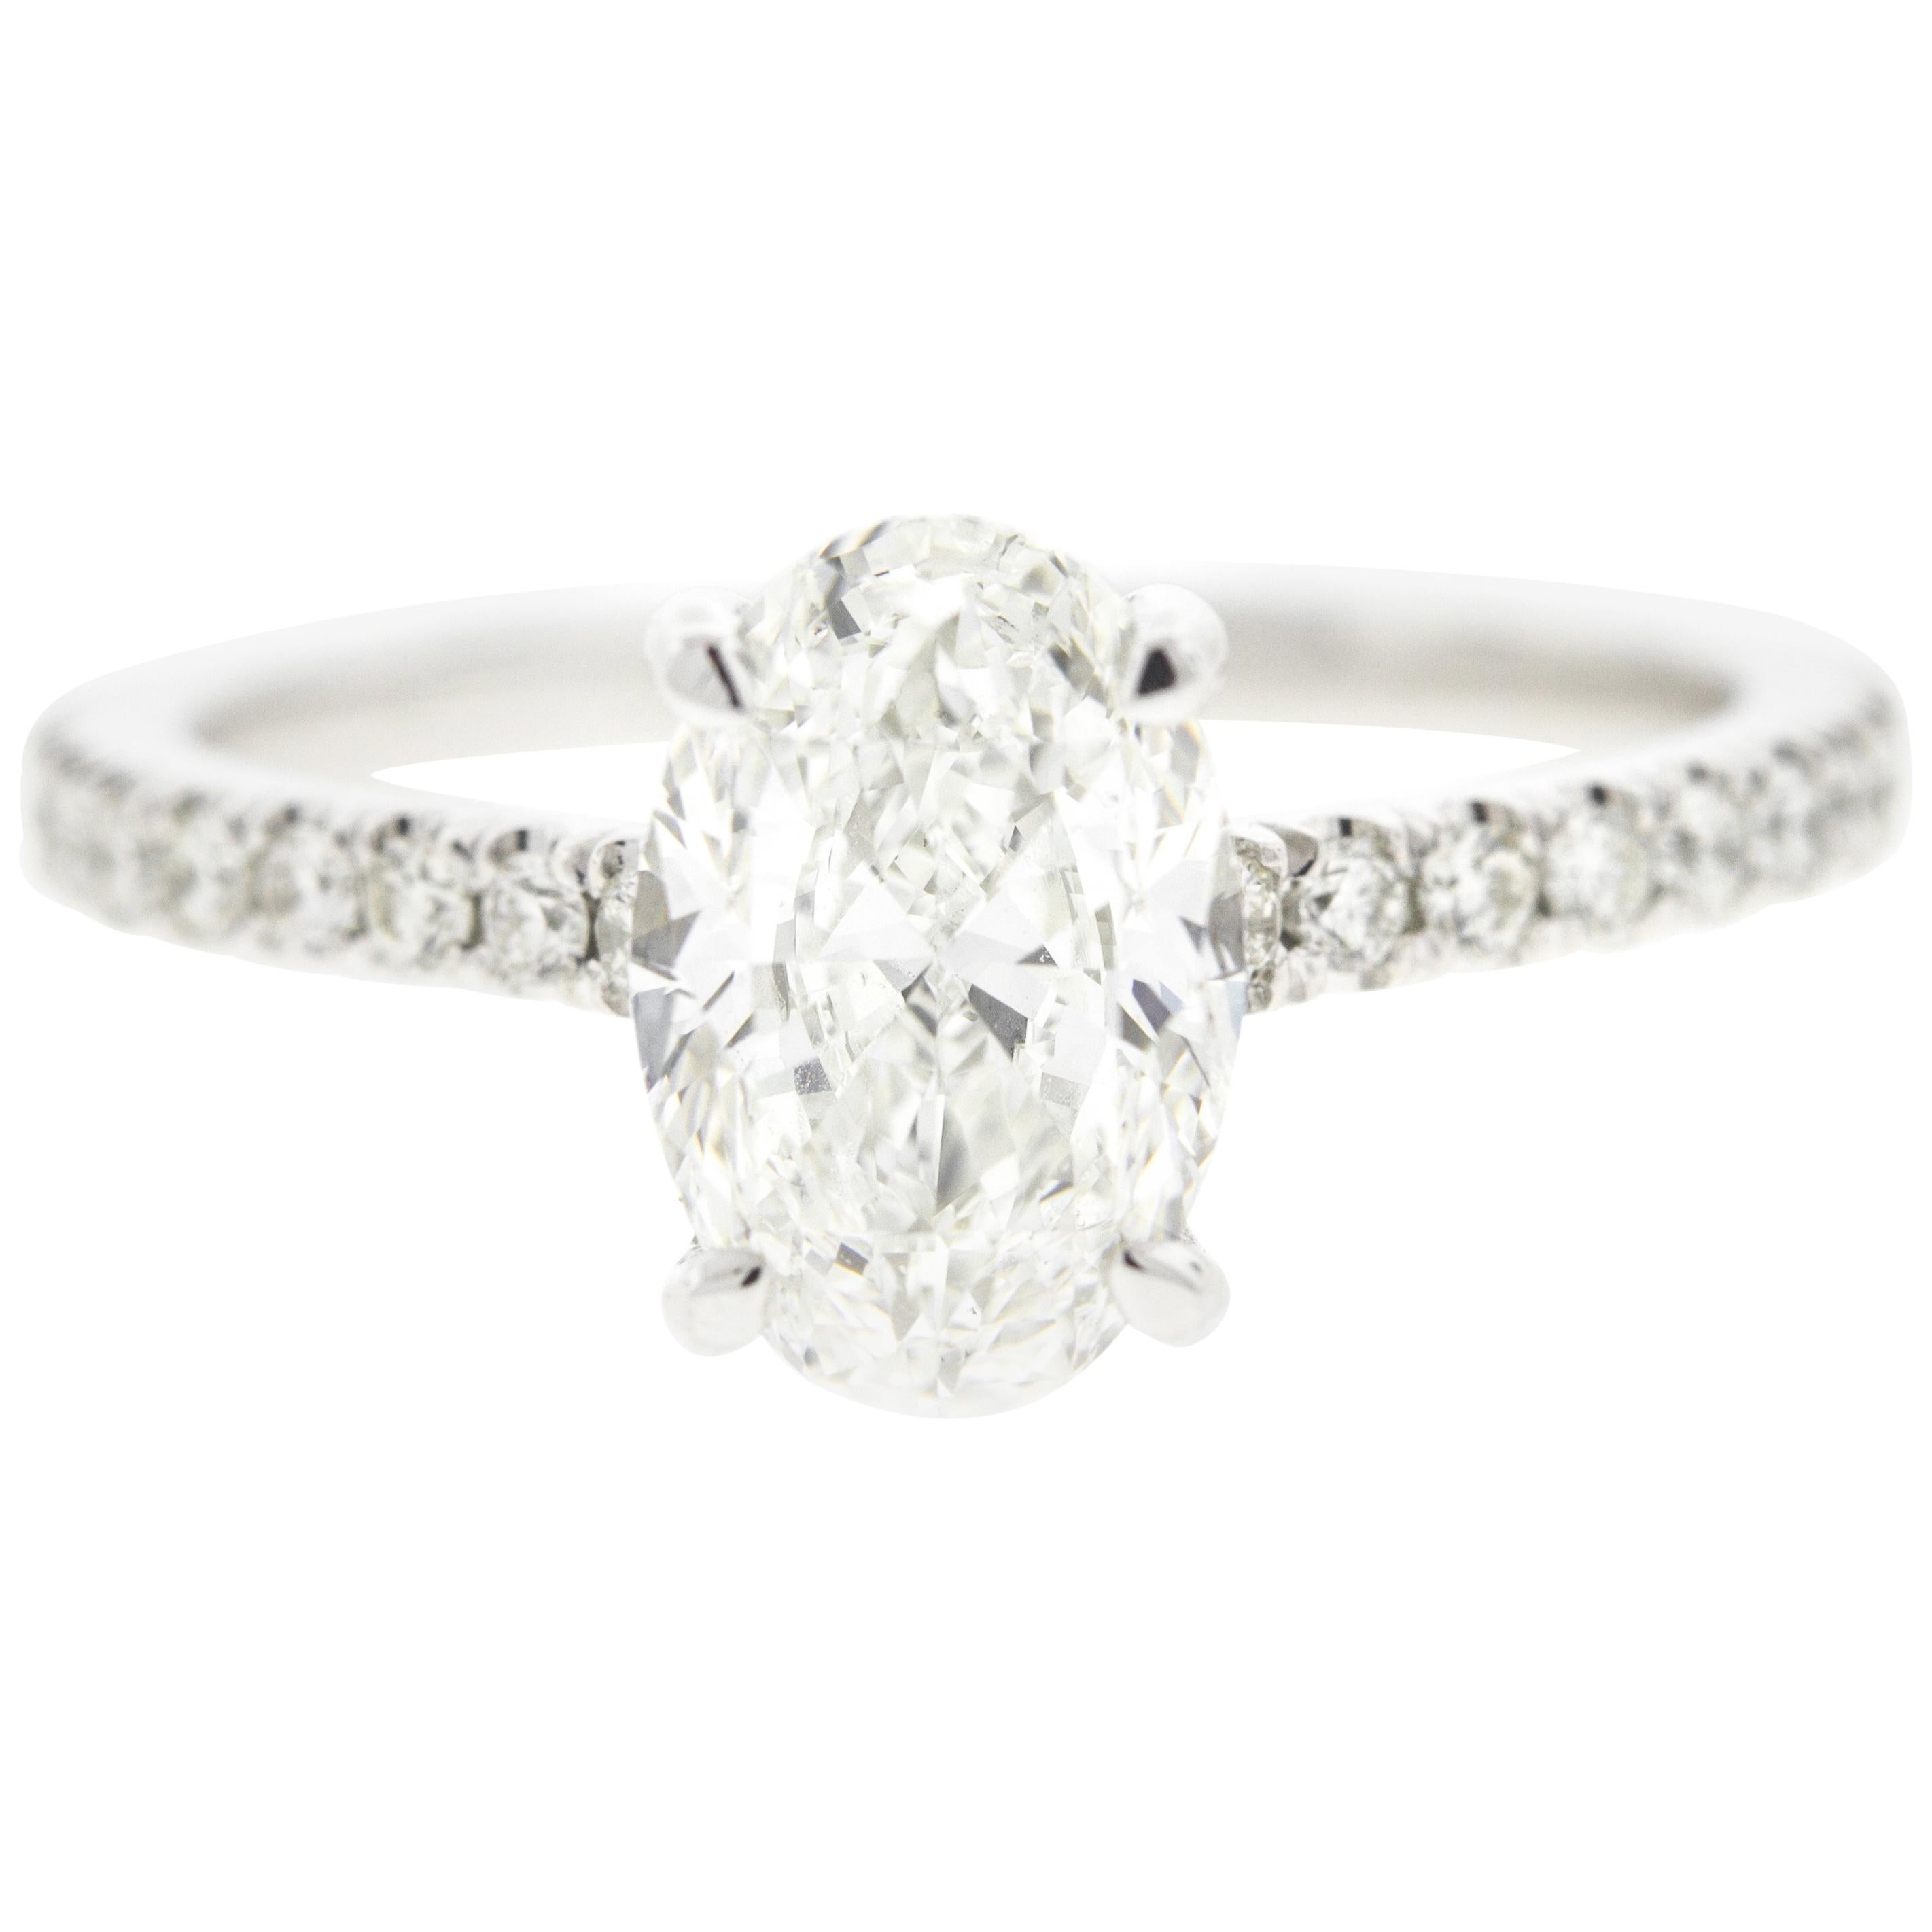 Oval Diamond Engagement Ring with Hidden Diamond Halo, Pave on the Shank